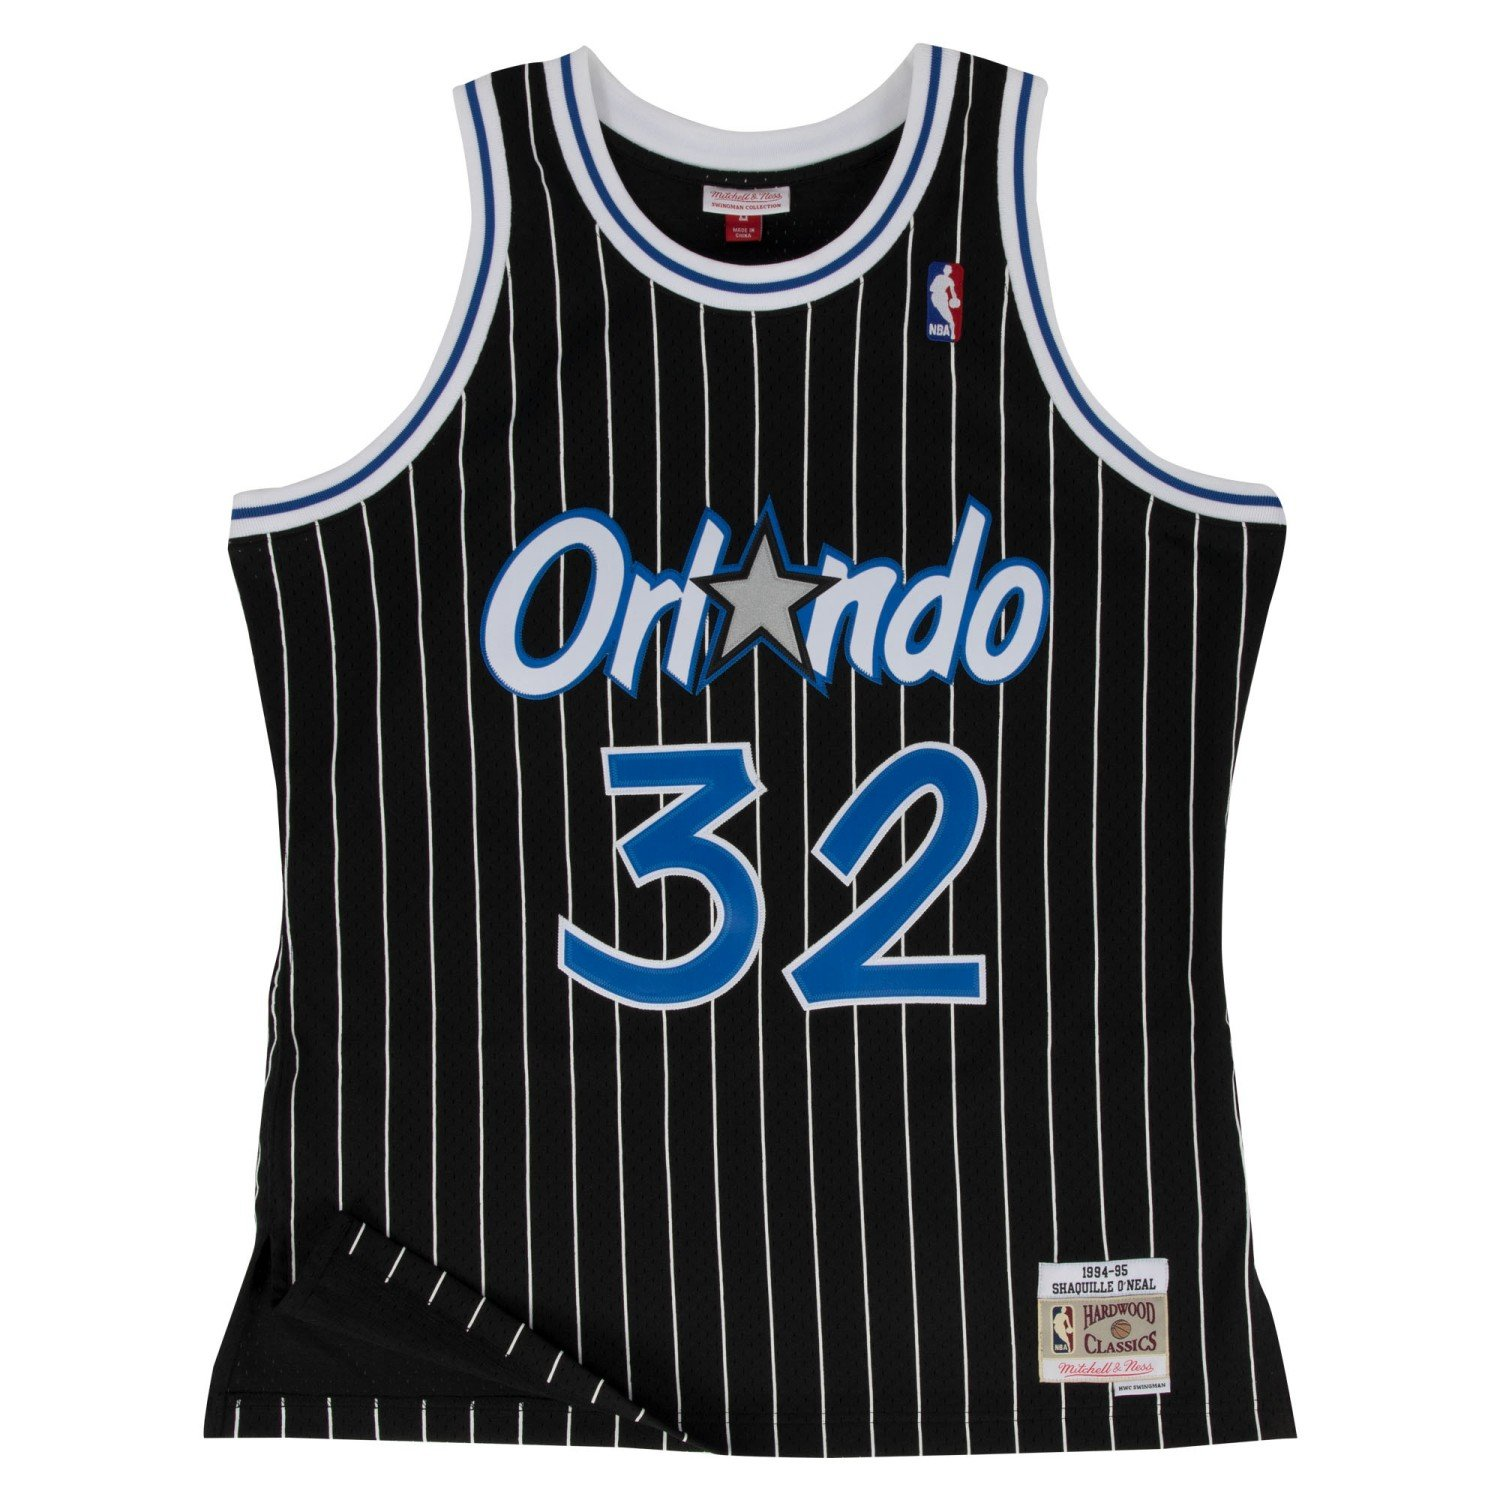 sale retailer 8ae61 3414a Mitchell & Ness Orlando Magic Shaquille O'Neal Black Swingman Jersey